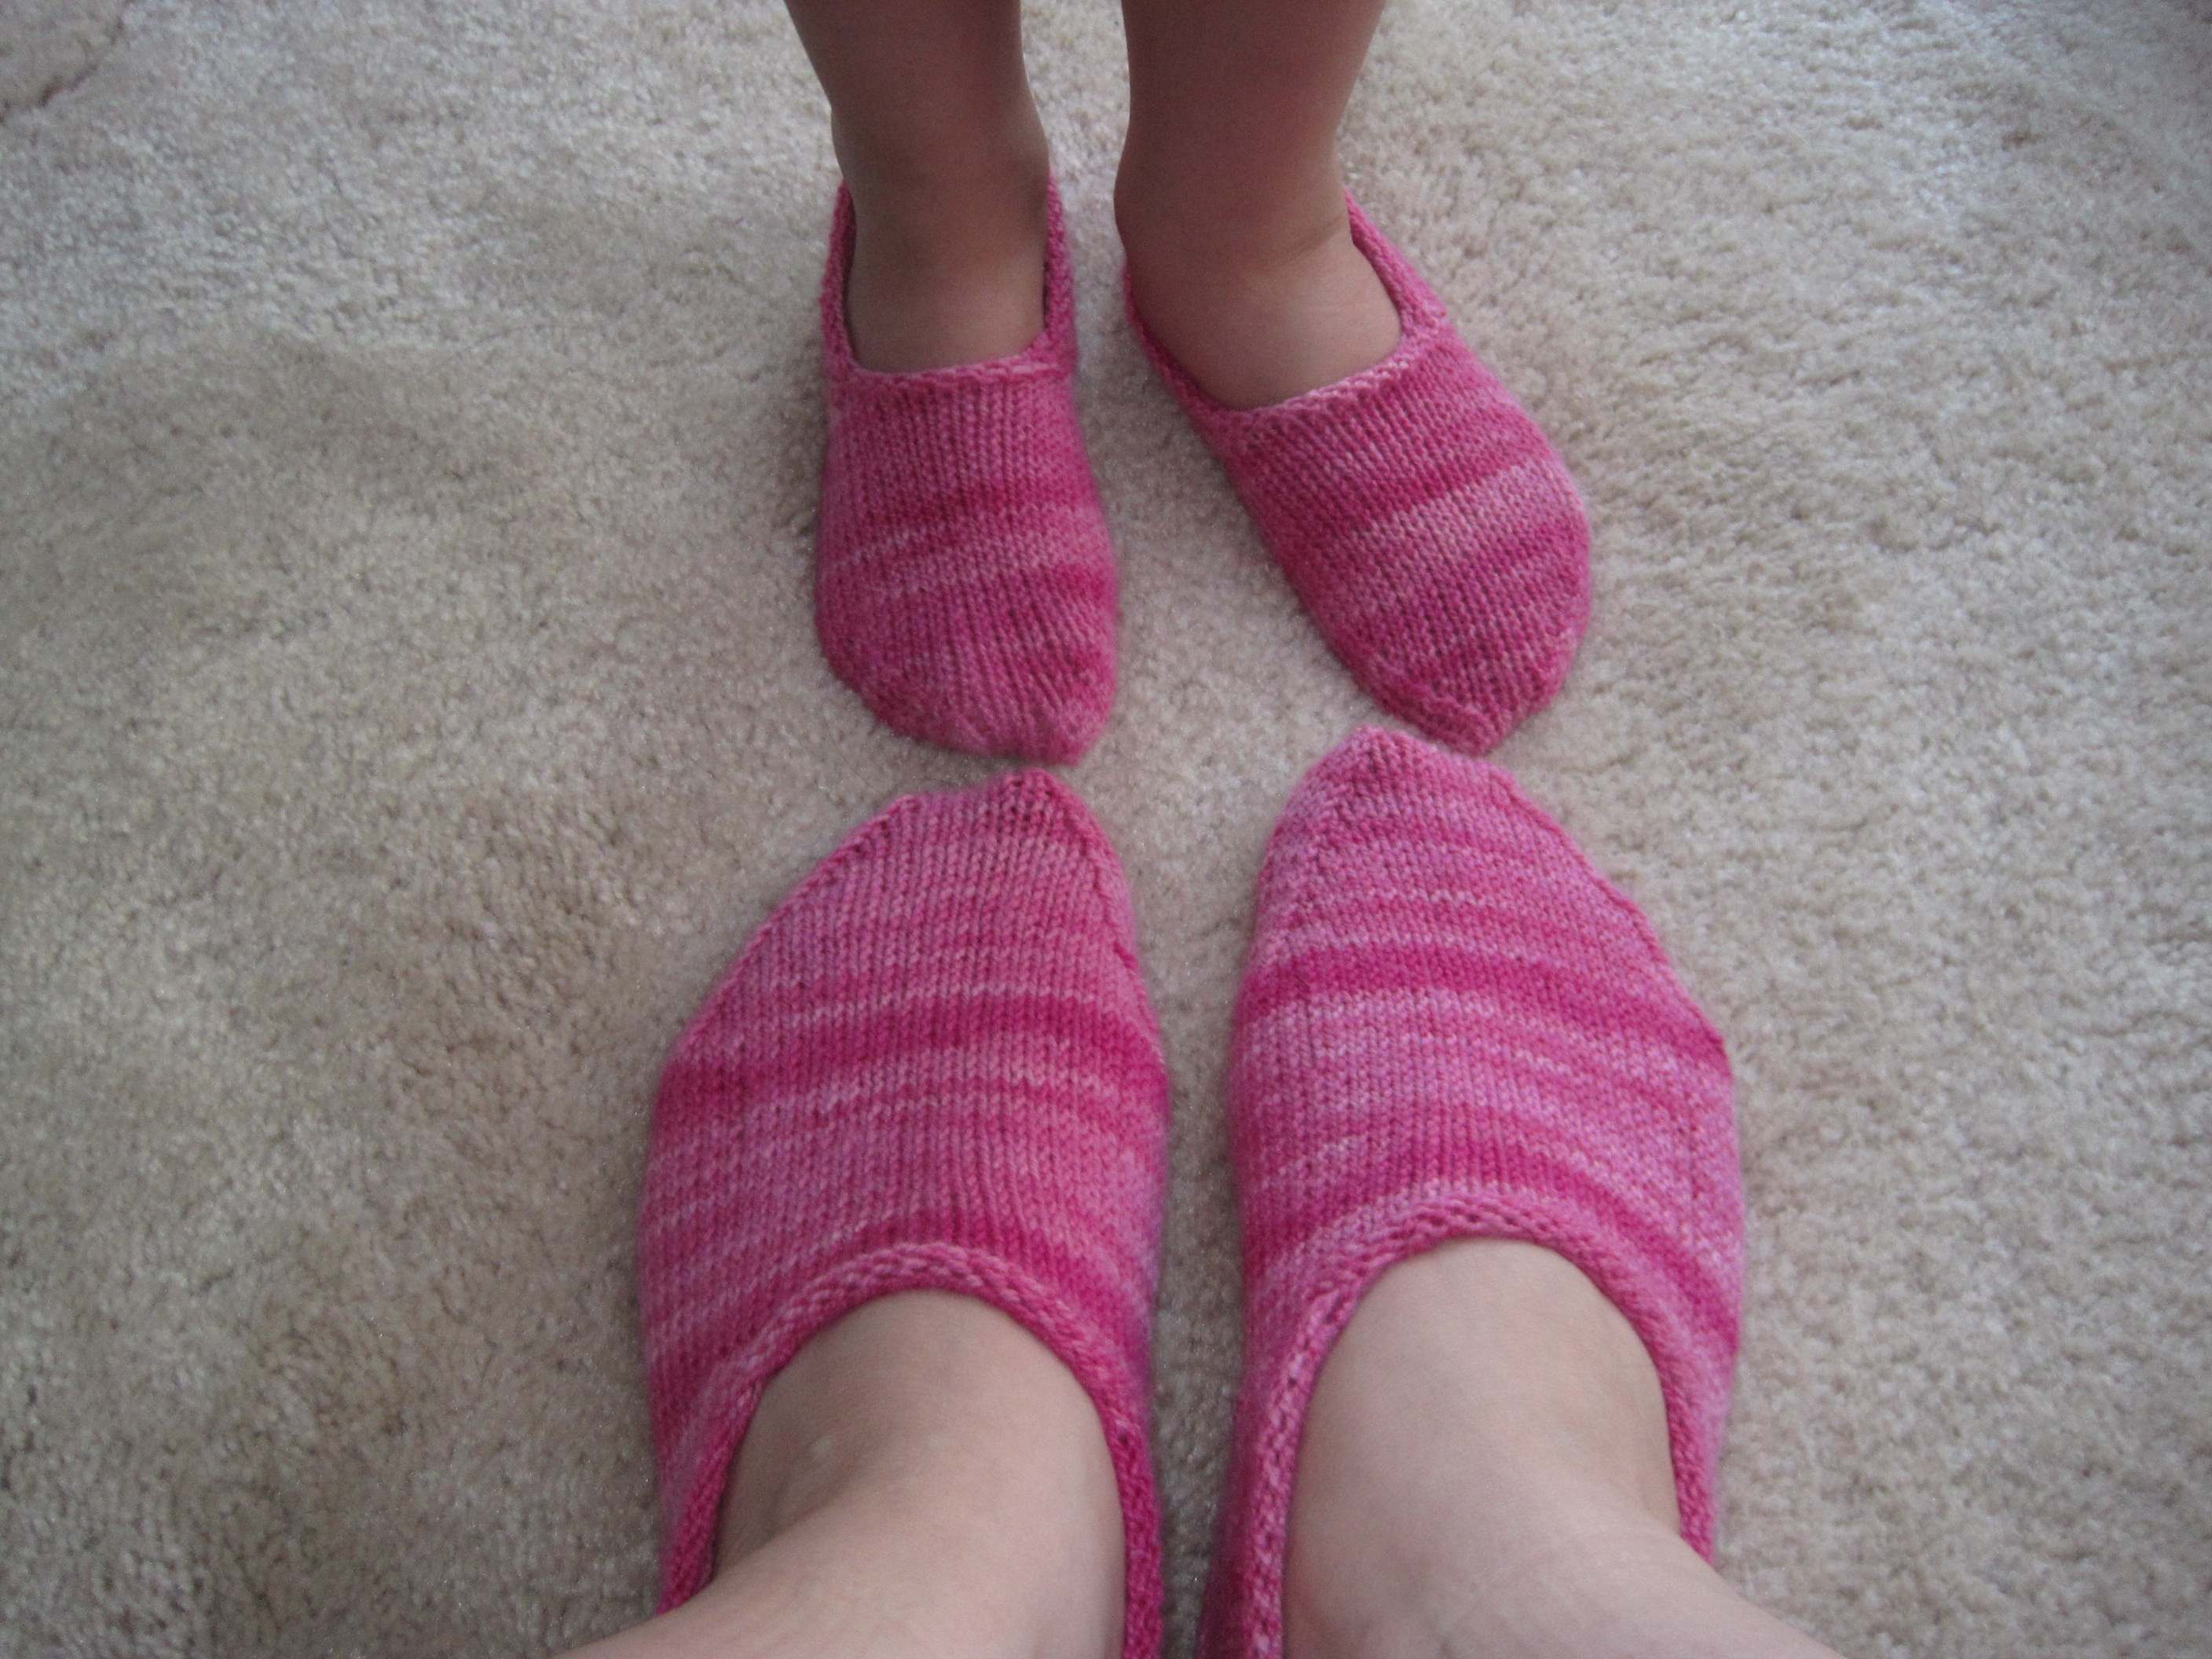 Childrens Bed Socks Knitting Pattern: Downsizer for a sustainable ...